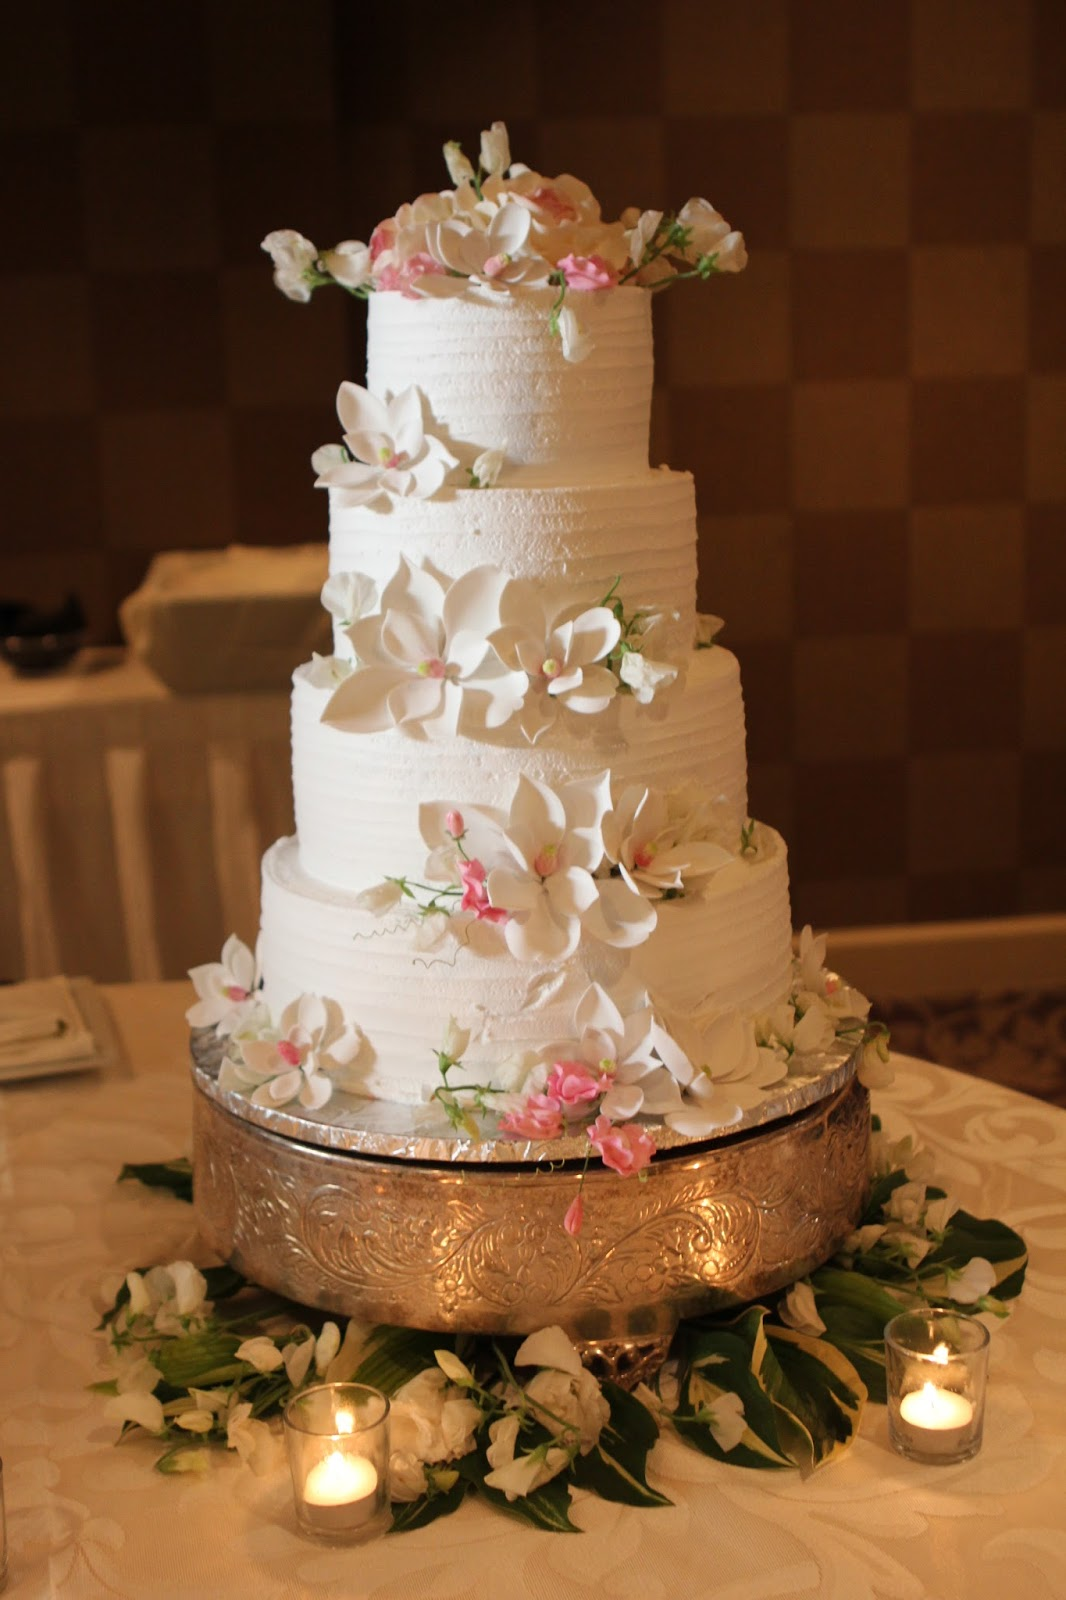 Tiered Wedding Cake On The Tray With Fresh Flowers